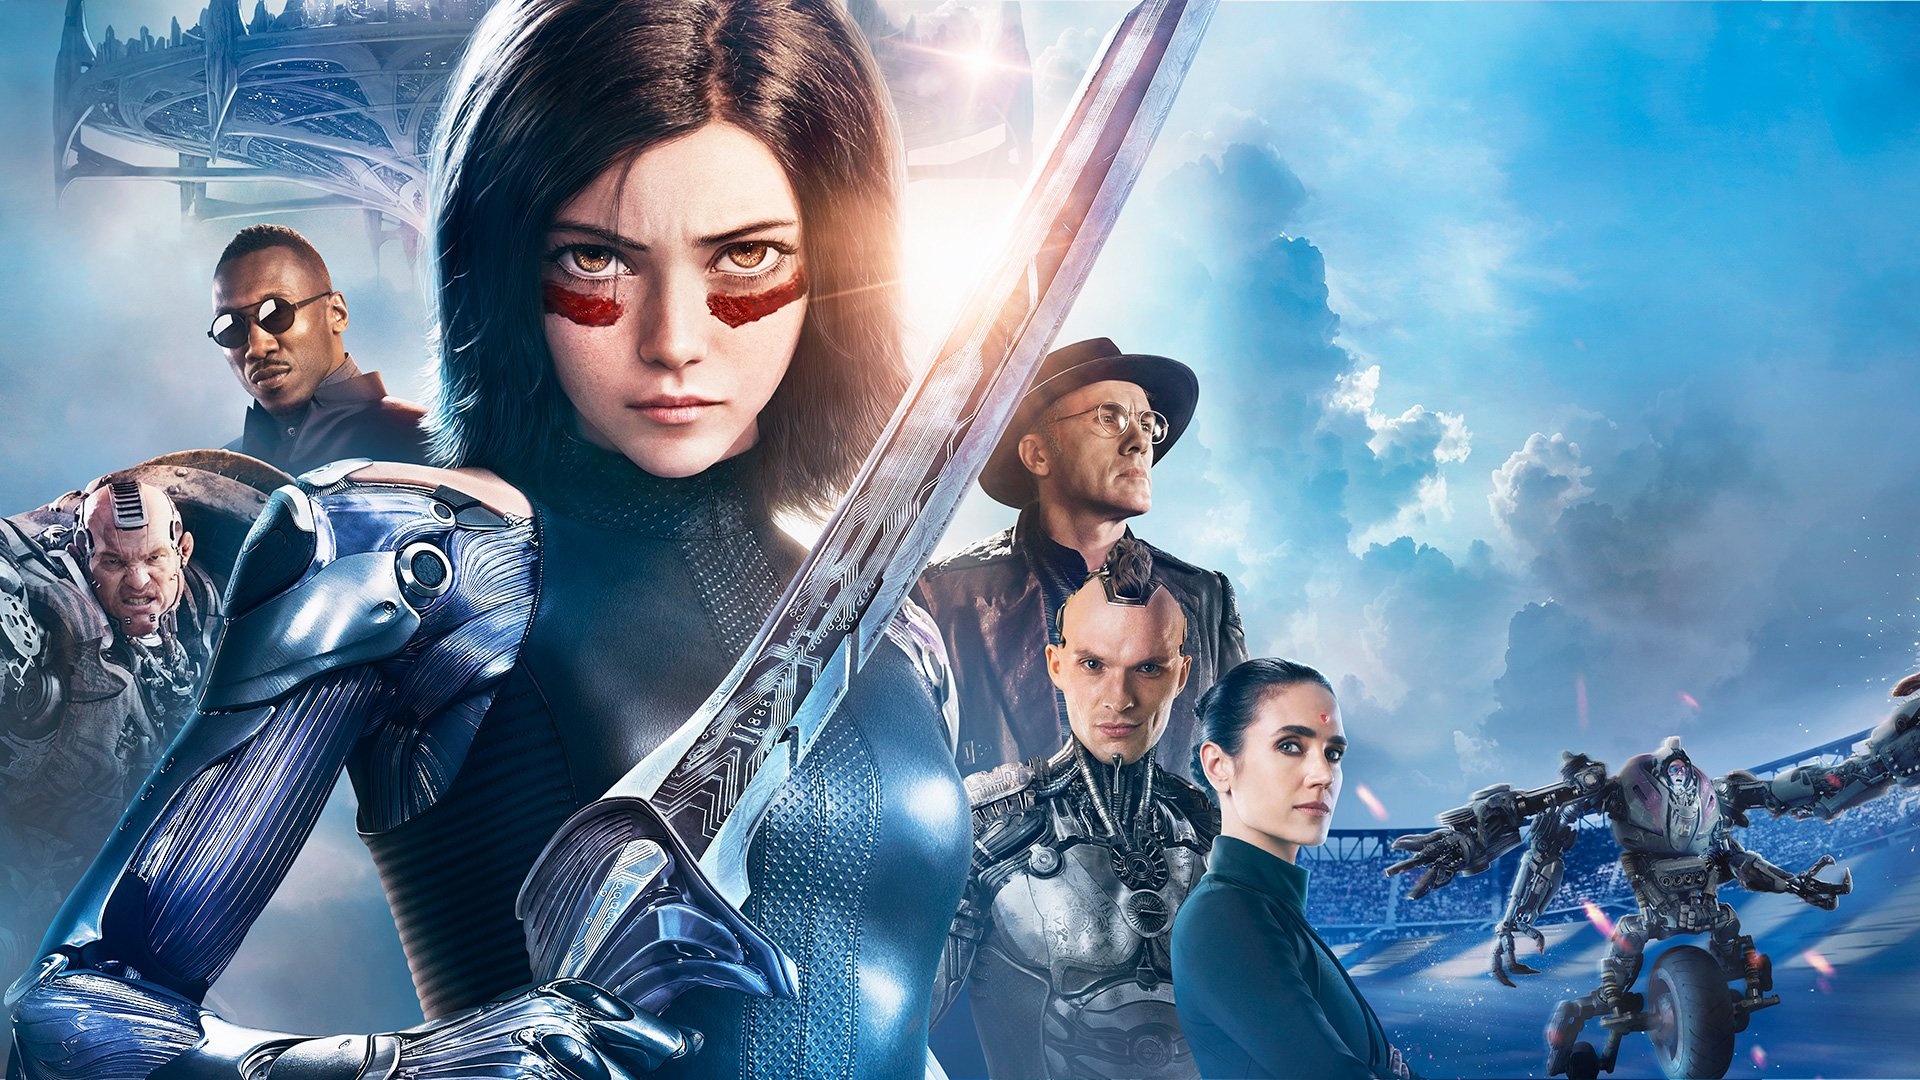 Alita Battle Angel Hd Wallpaper Background Image 1920x1080